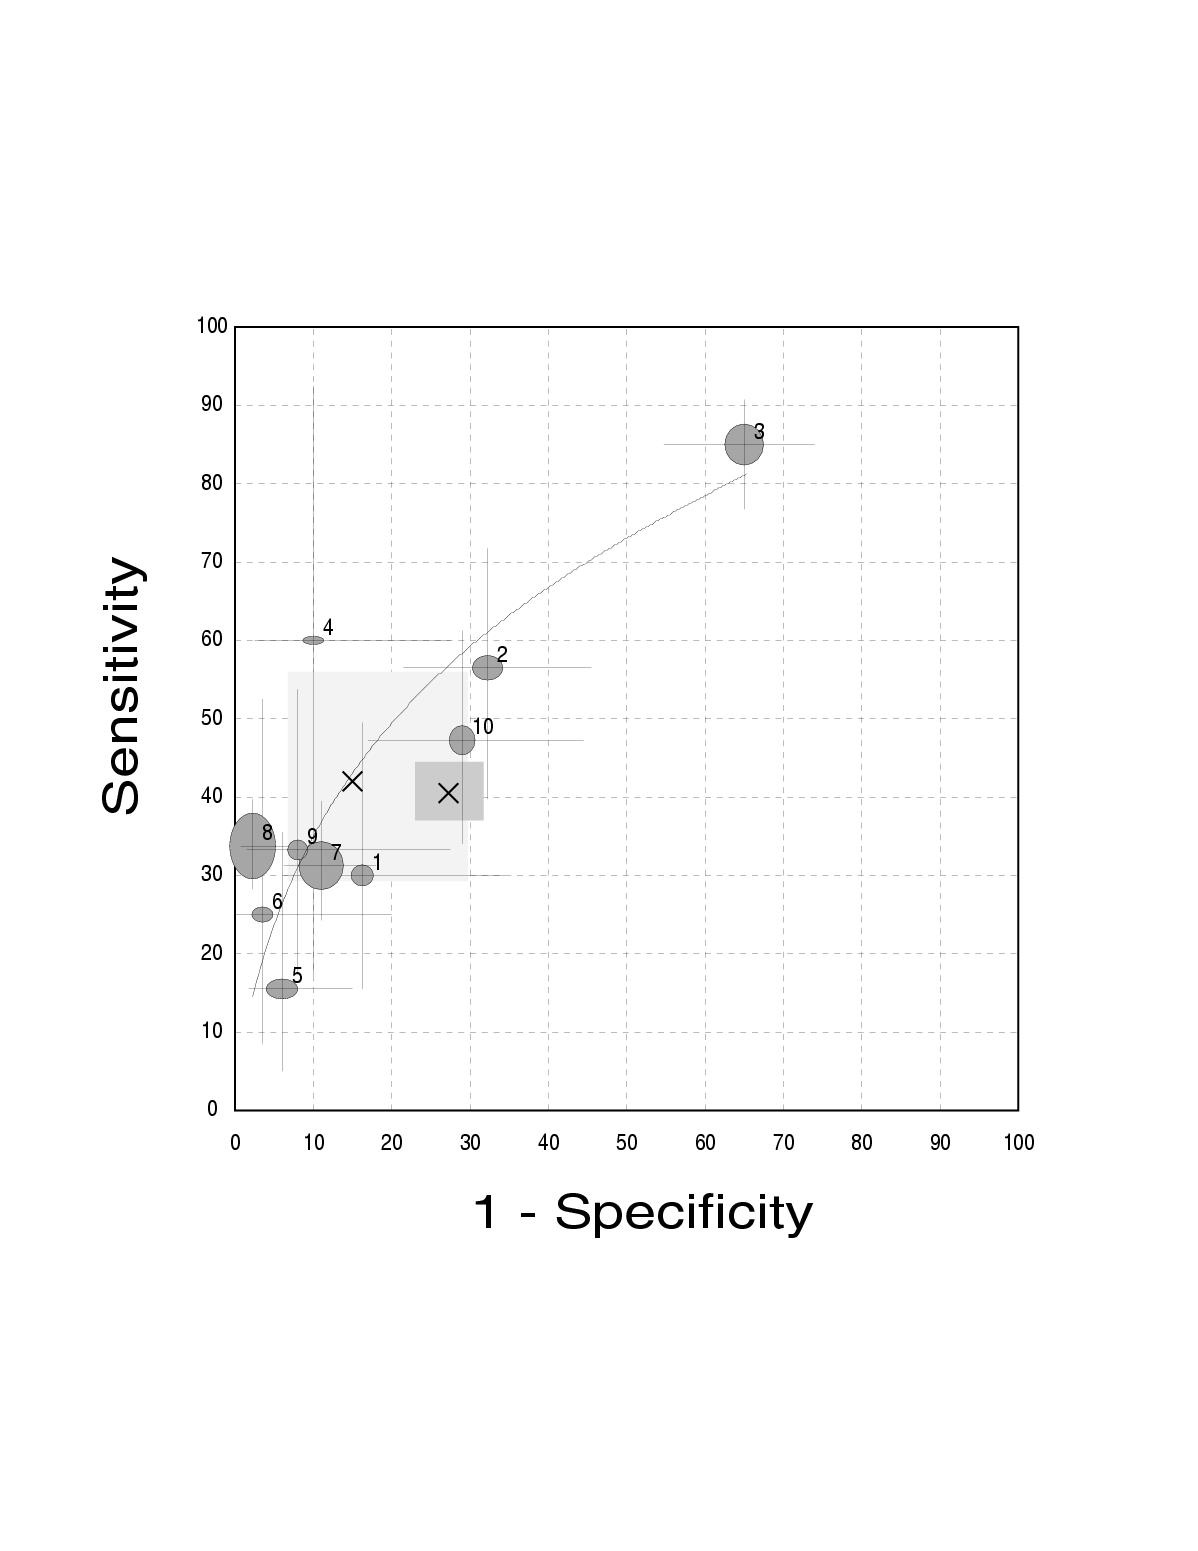 https://static-content.springer.com/image/art%3A10.1186%2F1472-6947-1-6/MediaObjects/12911_2001_Article_6_Fig2_HTML.jpg